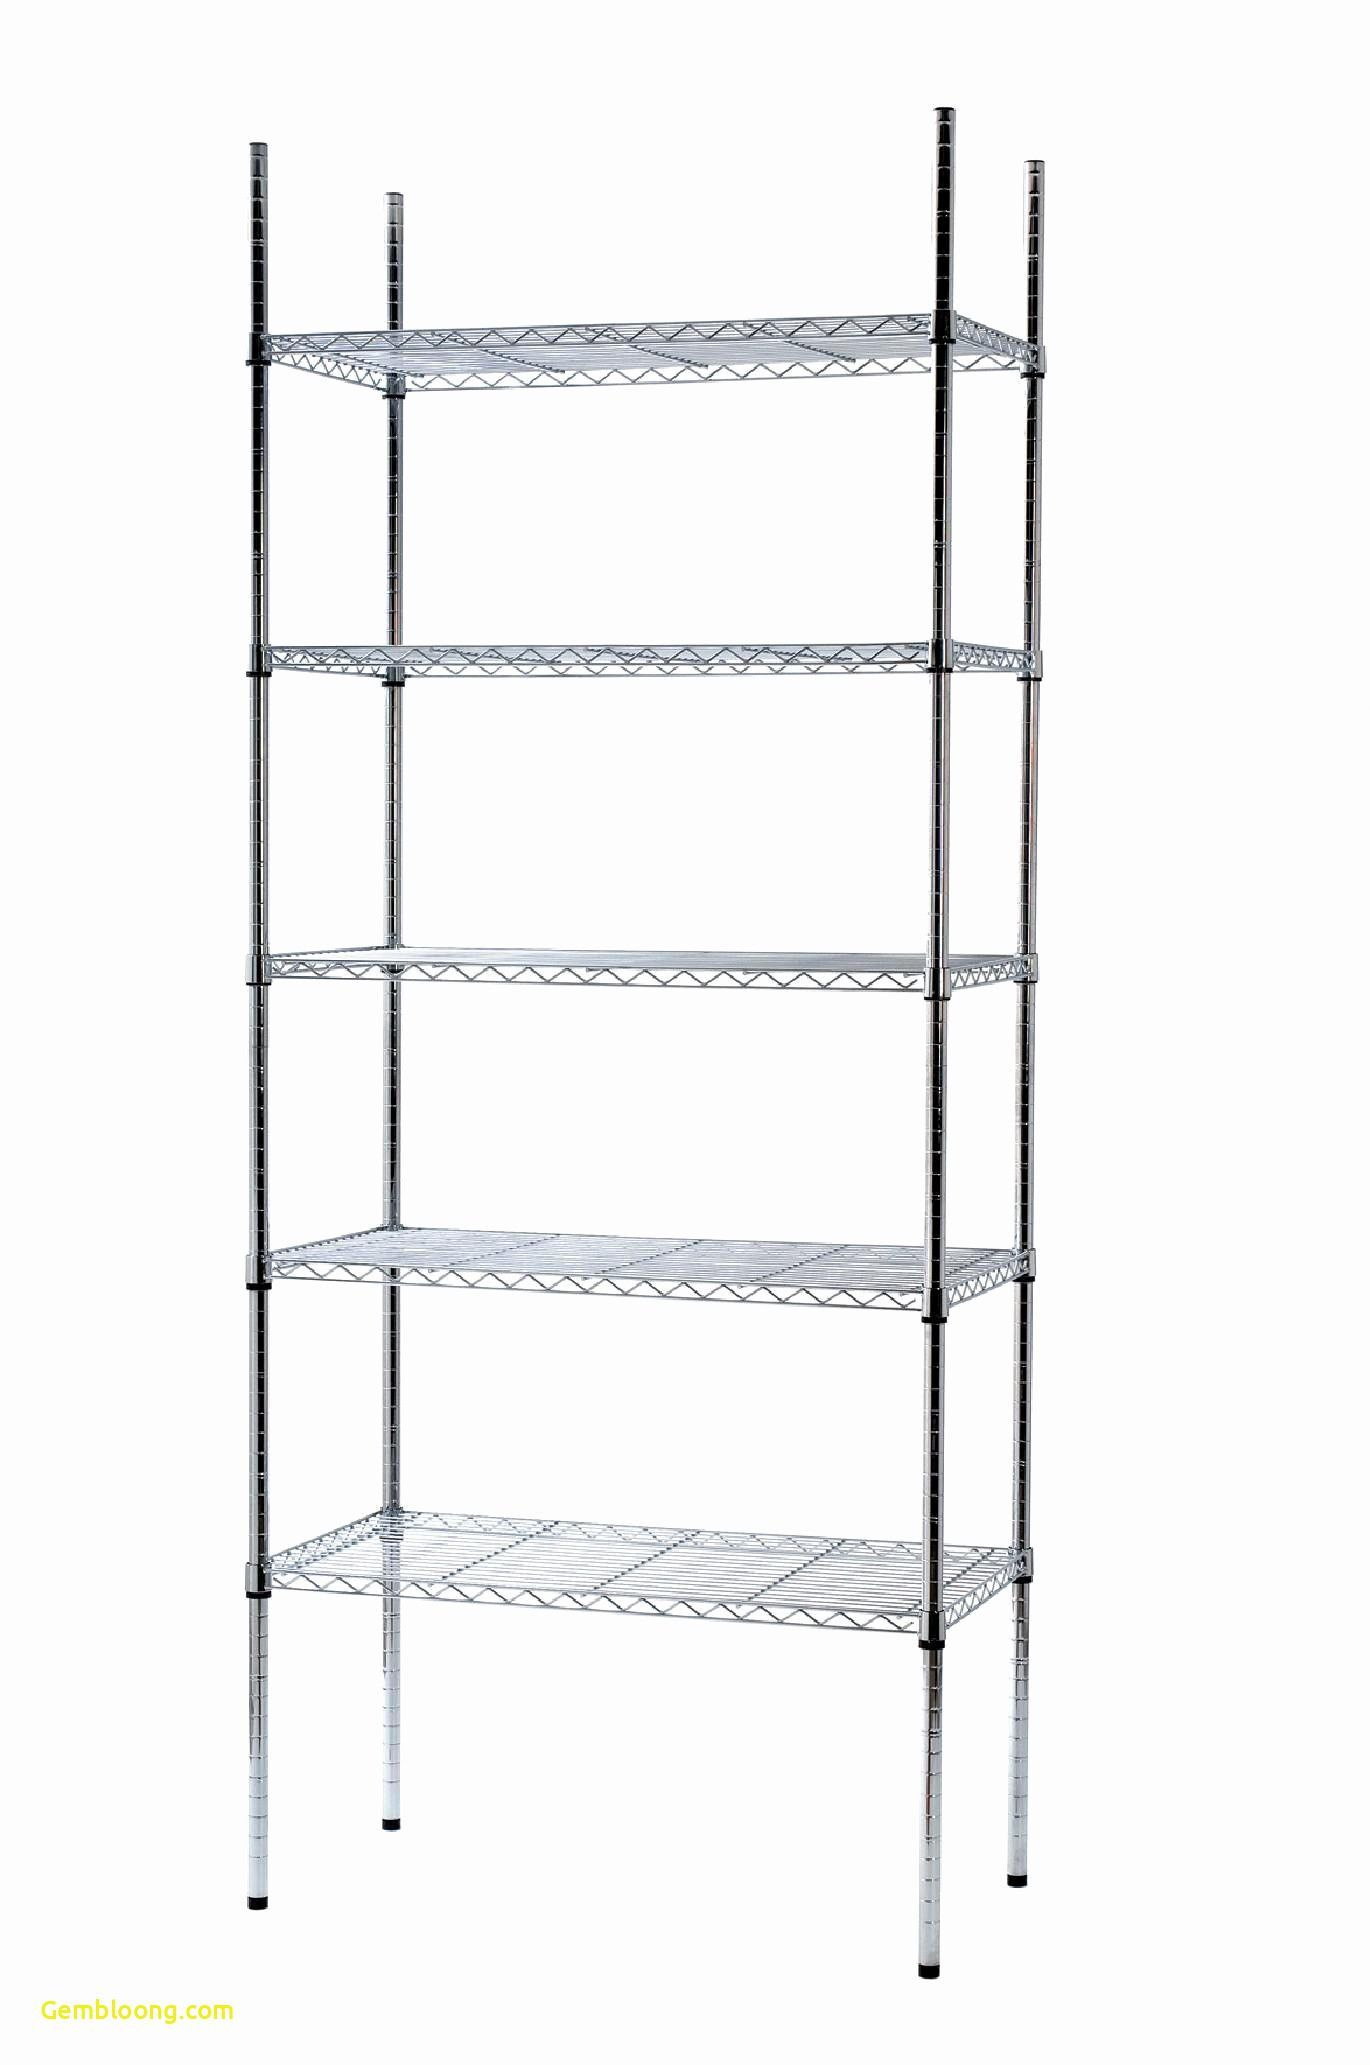 Bois Bricolage Etagere Luxe 27 De Luxe Etagere Bois Mr Bricolage Check More At Meubleparis Club In 2020